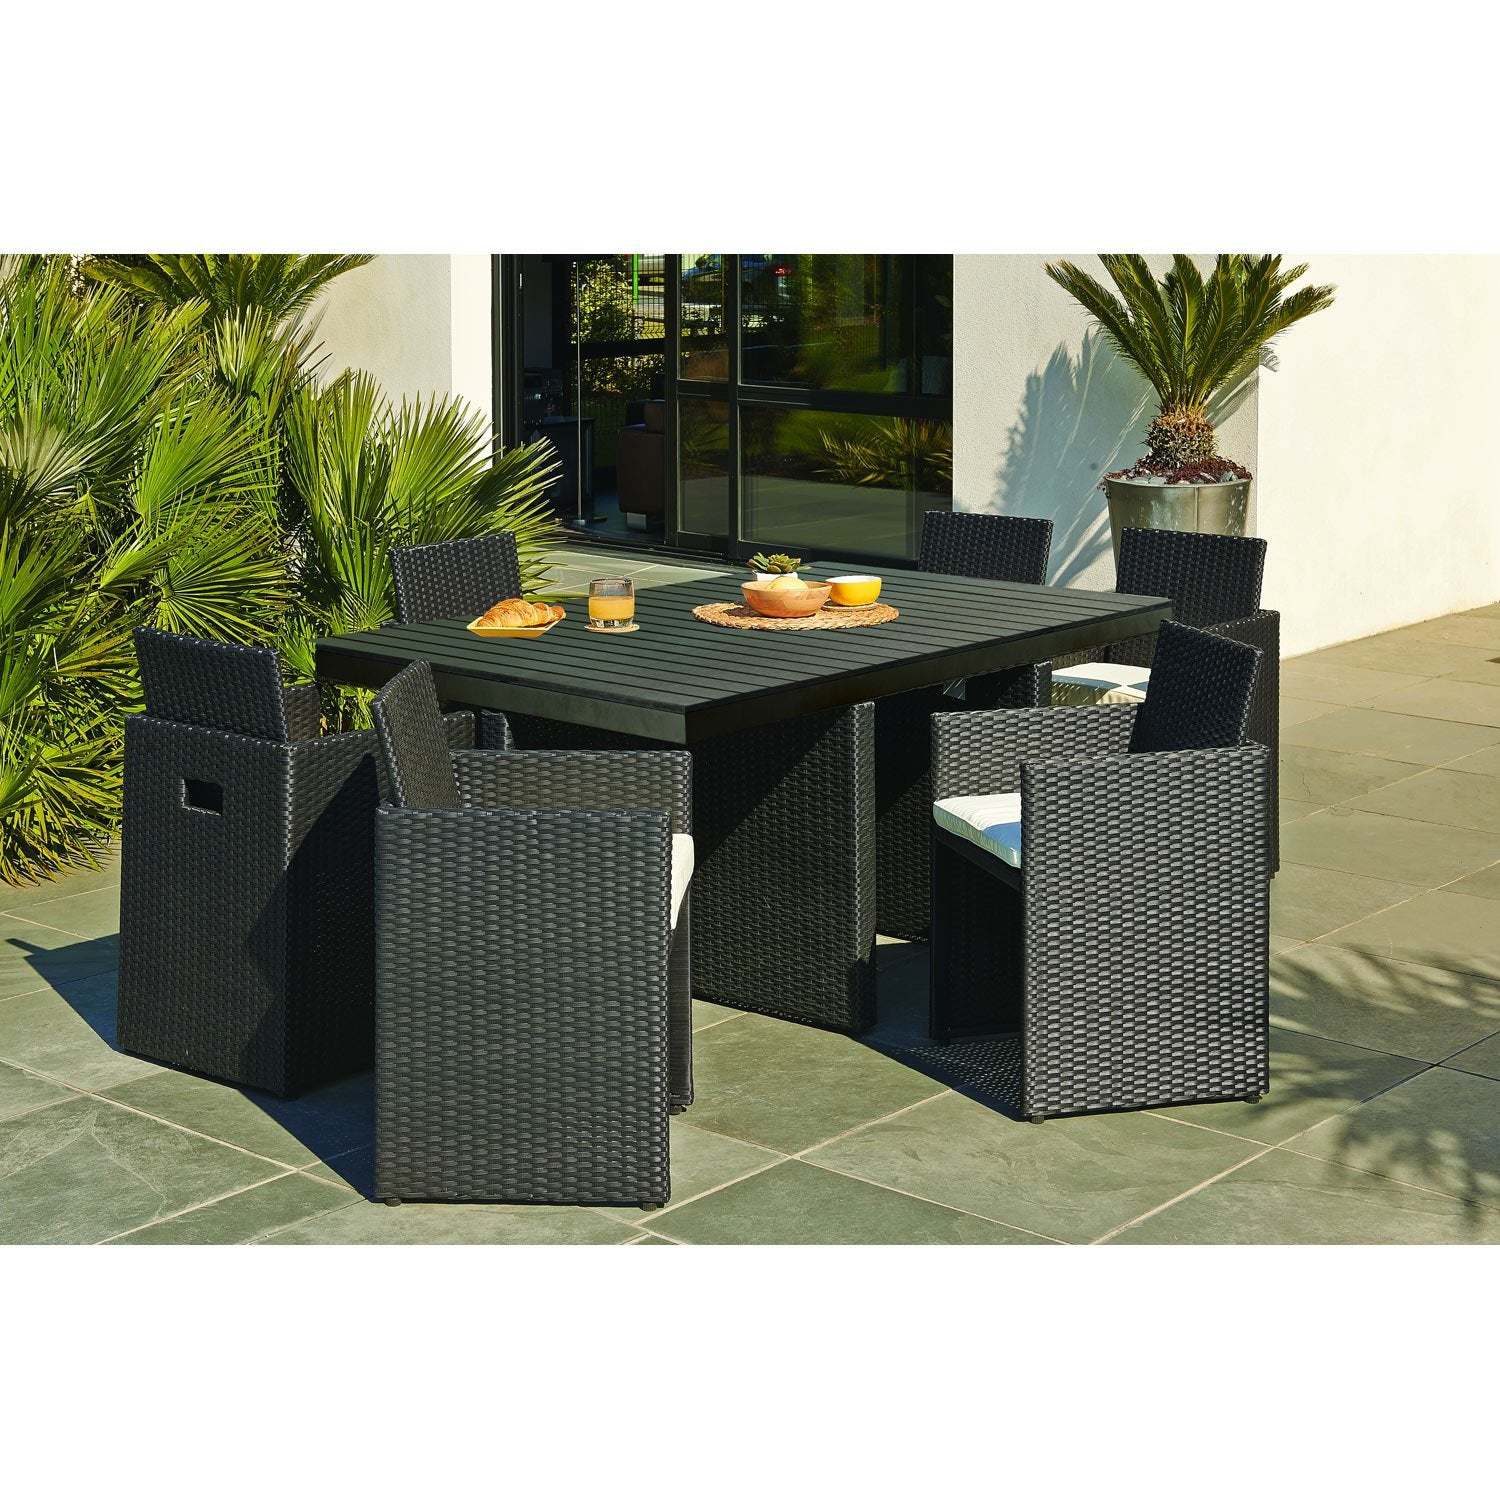 Salon de jardin encastrable r sine tress e noir 1 table 6 fauteuils leroy merlin Salon de jardin resine bricomarche